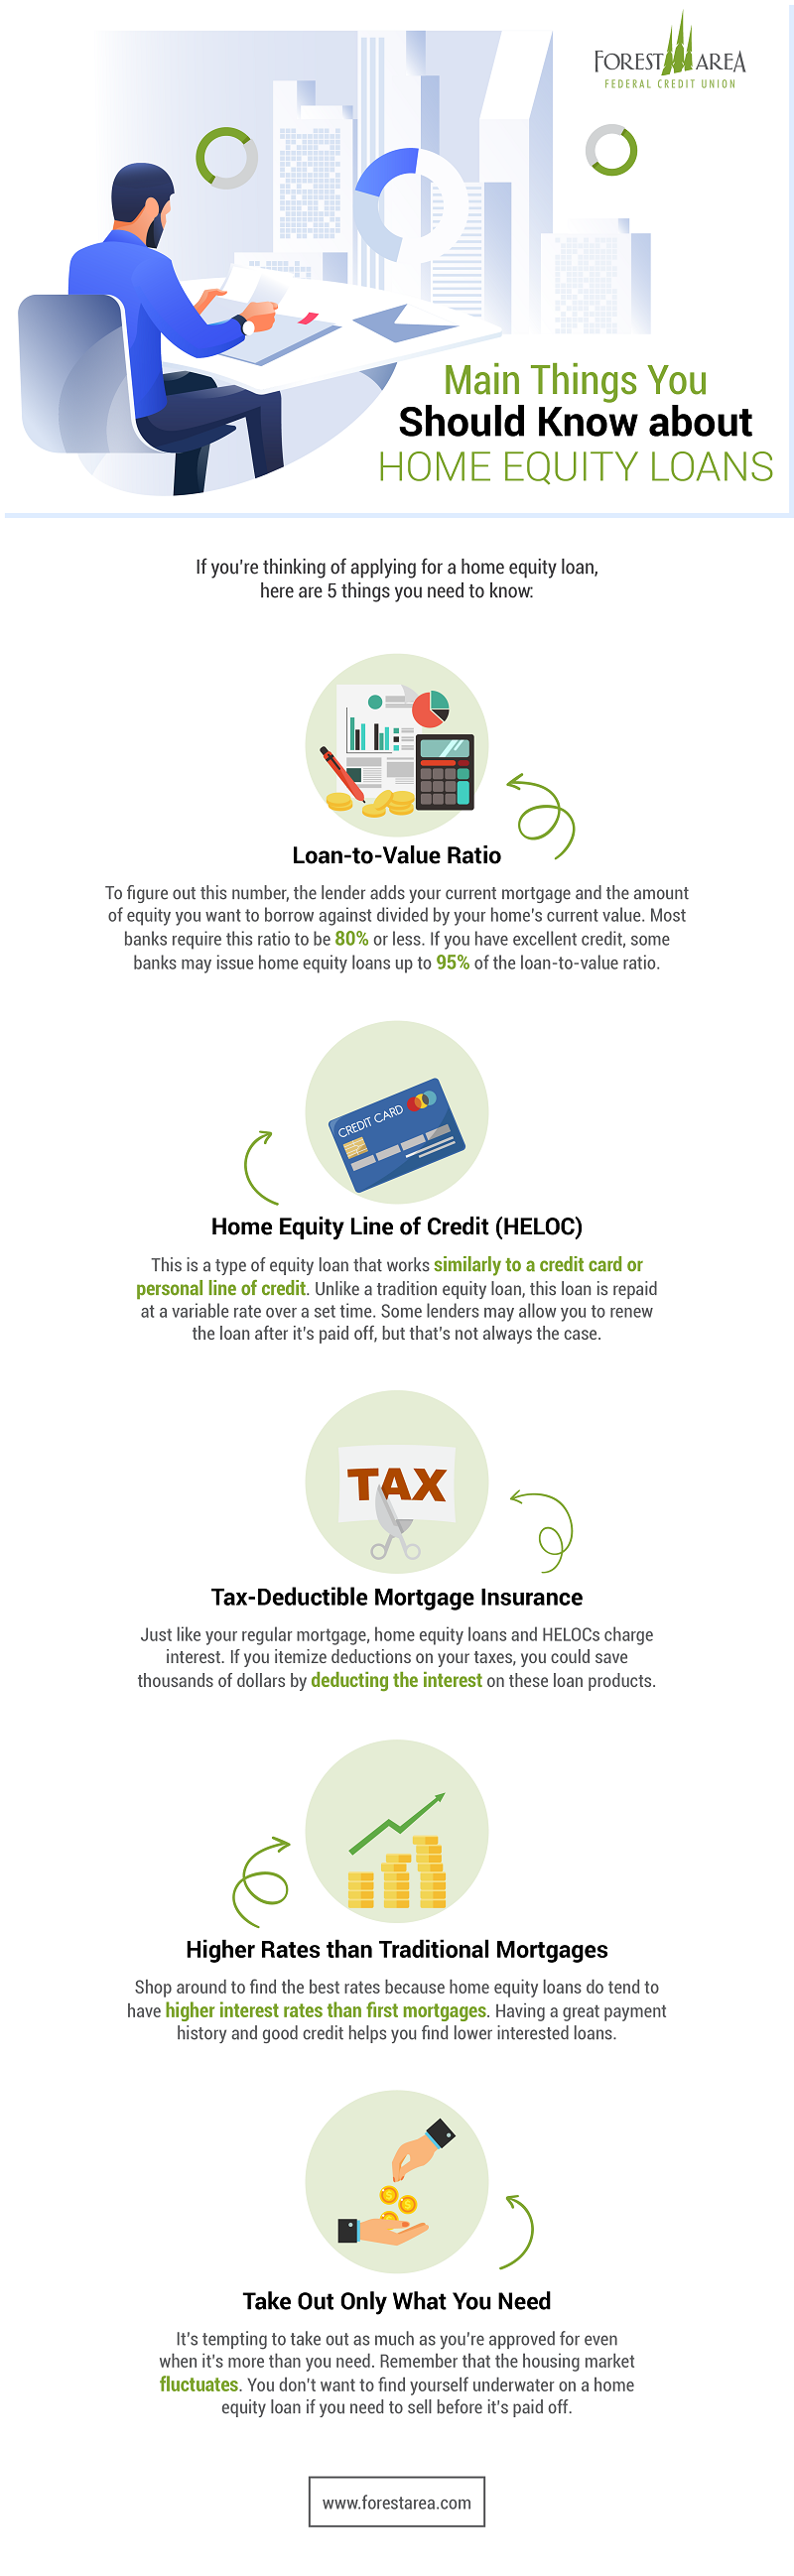 Main Things You Should Know about Home Equity Loans